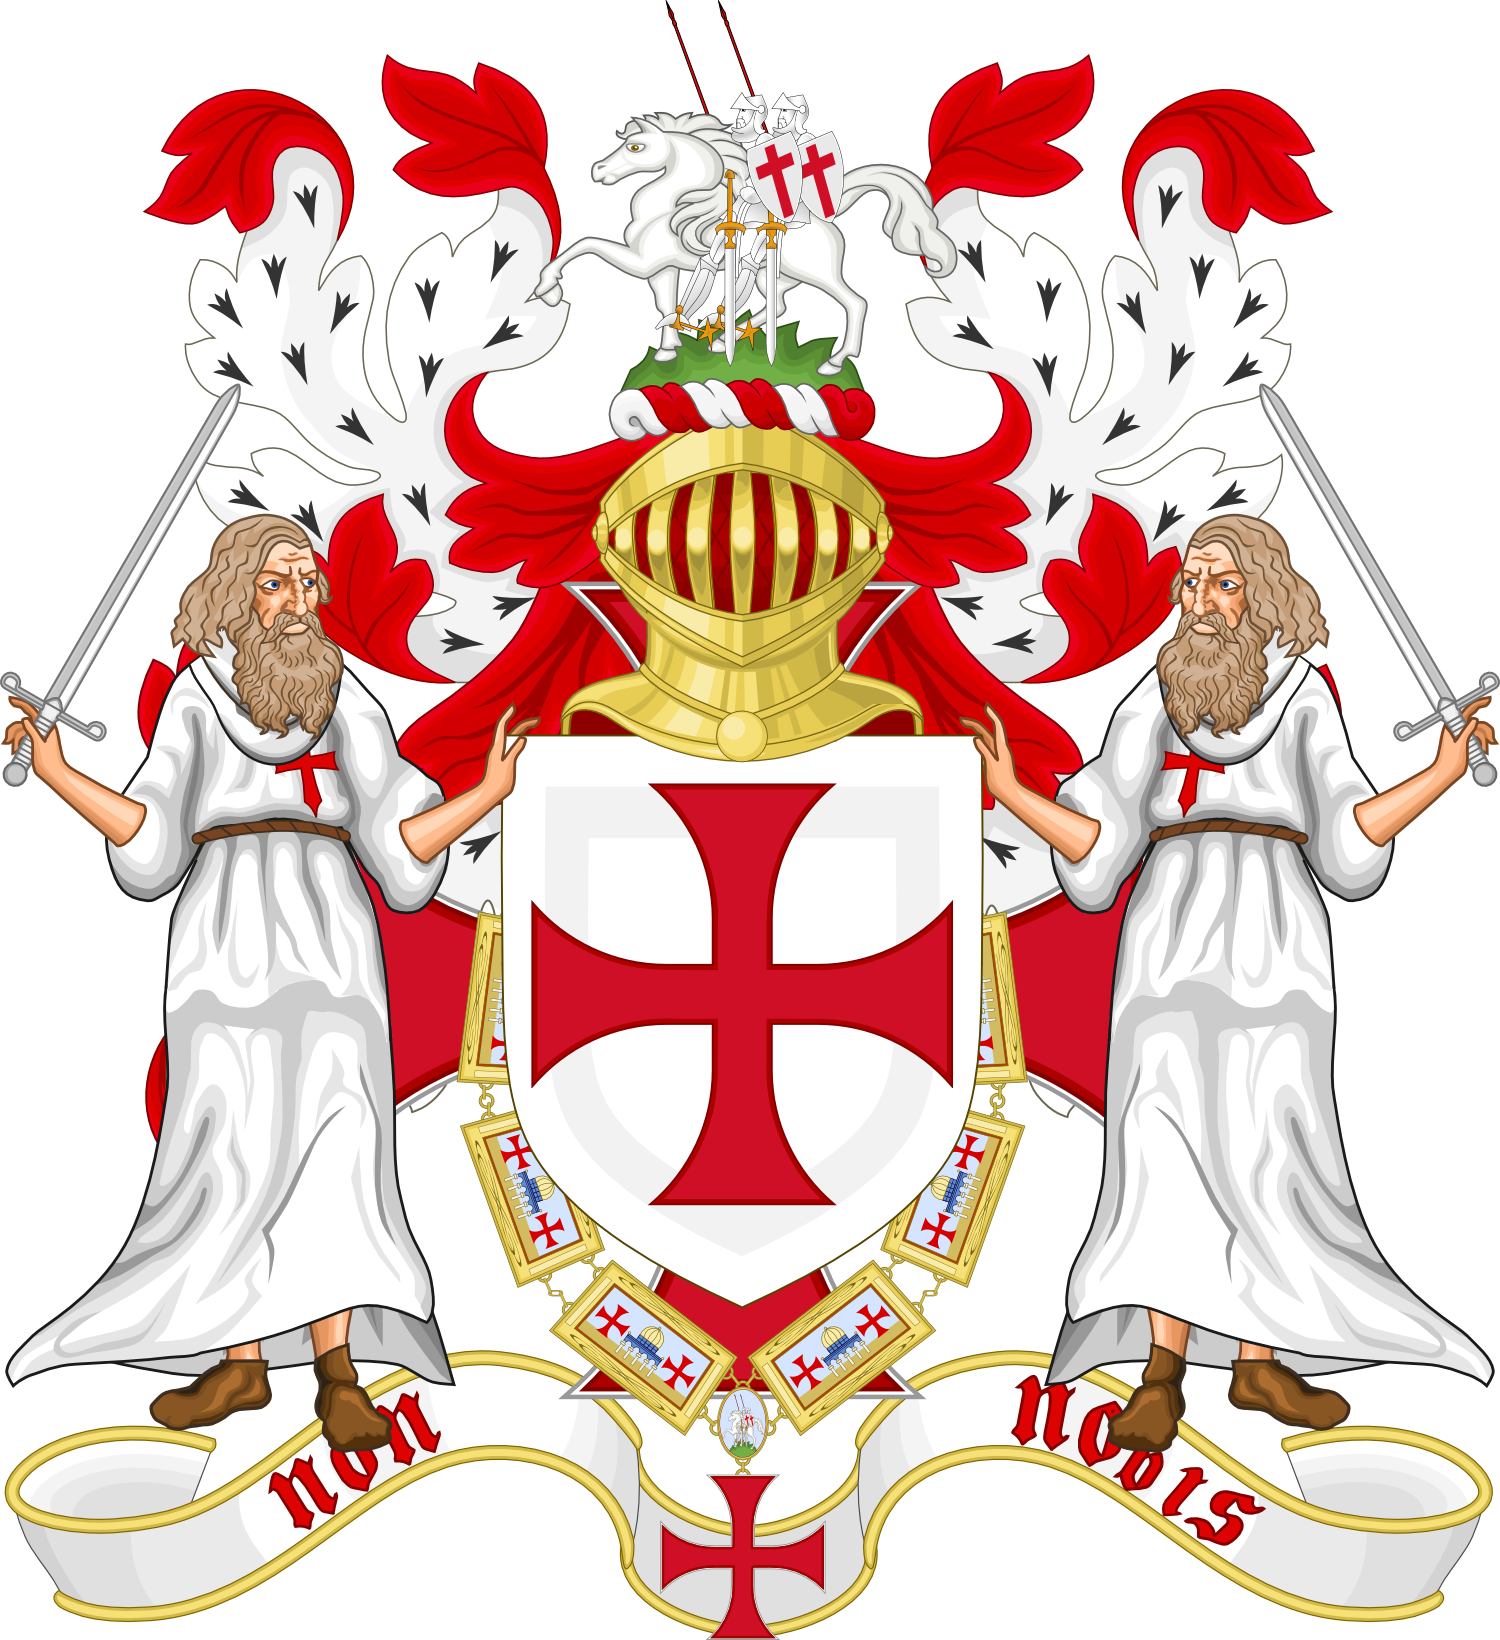 Knight clipart knights templar. Poor of christ by